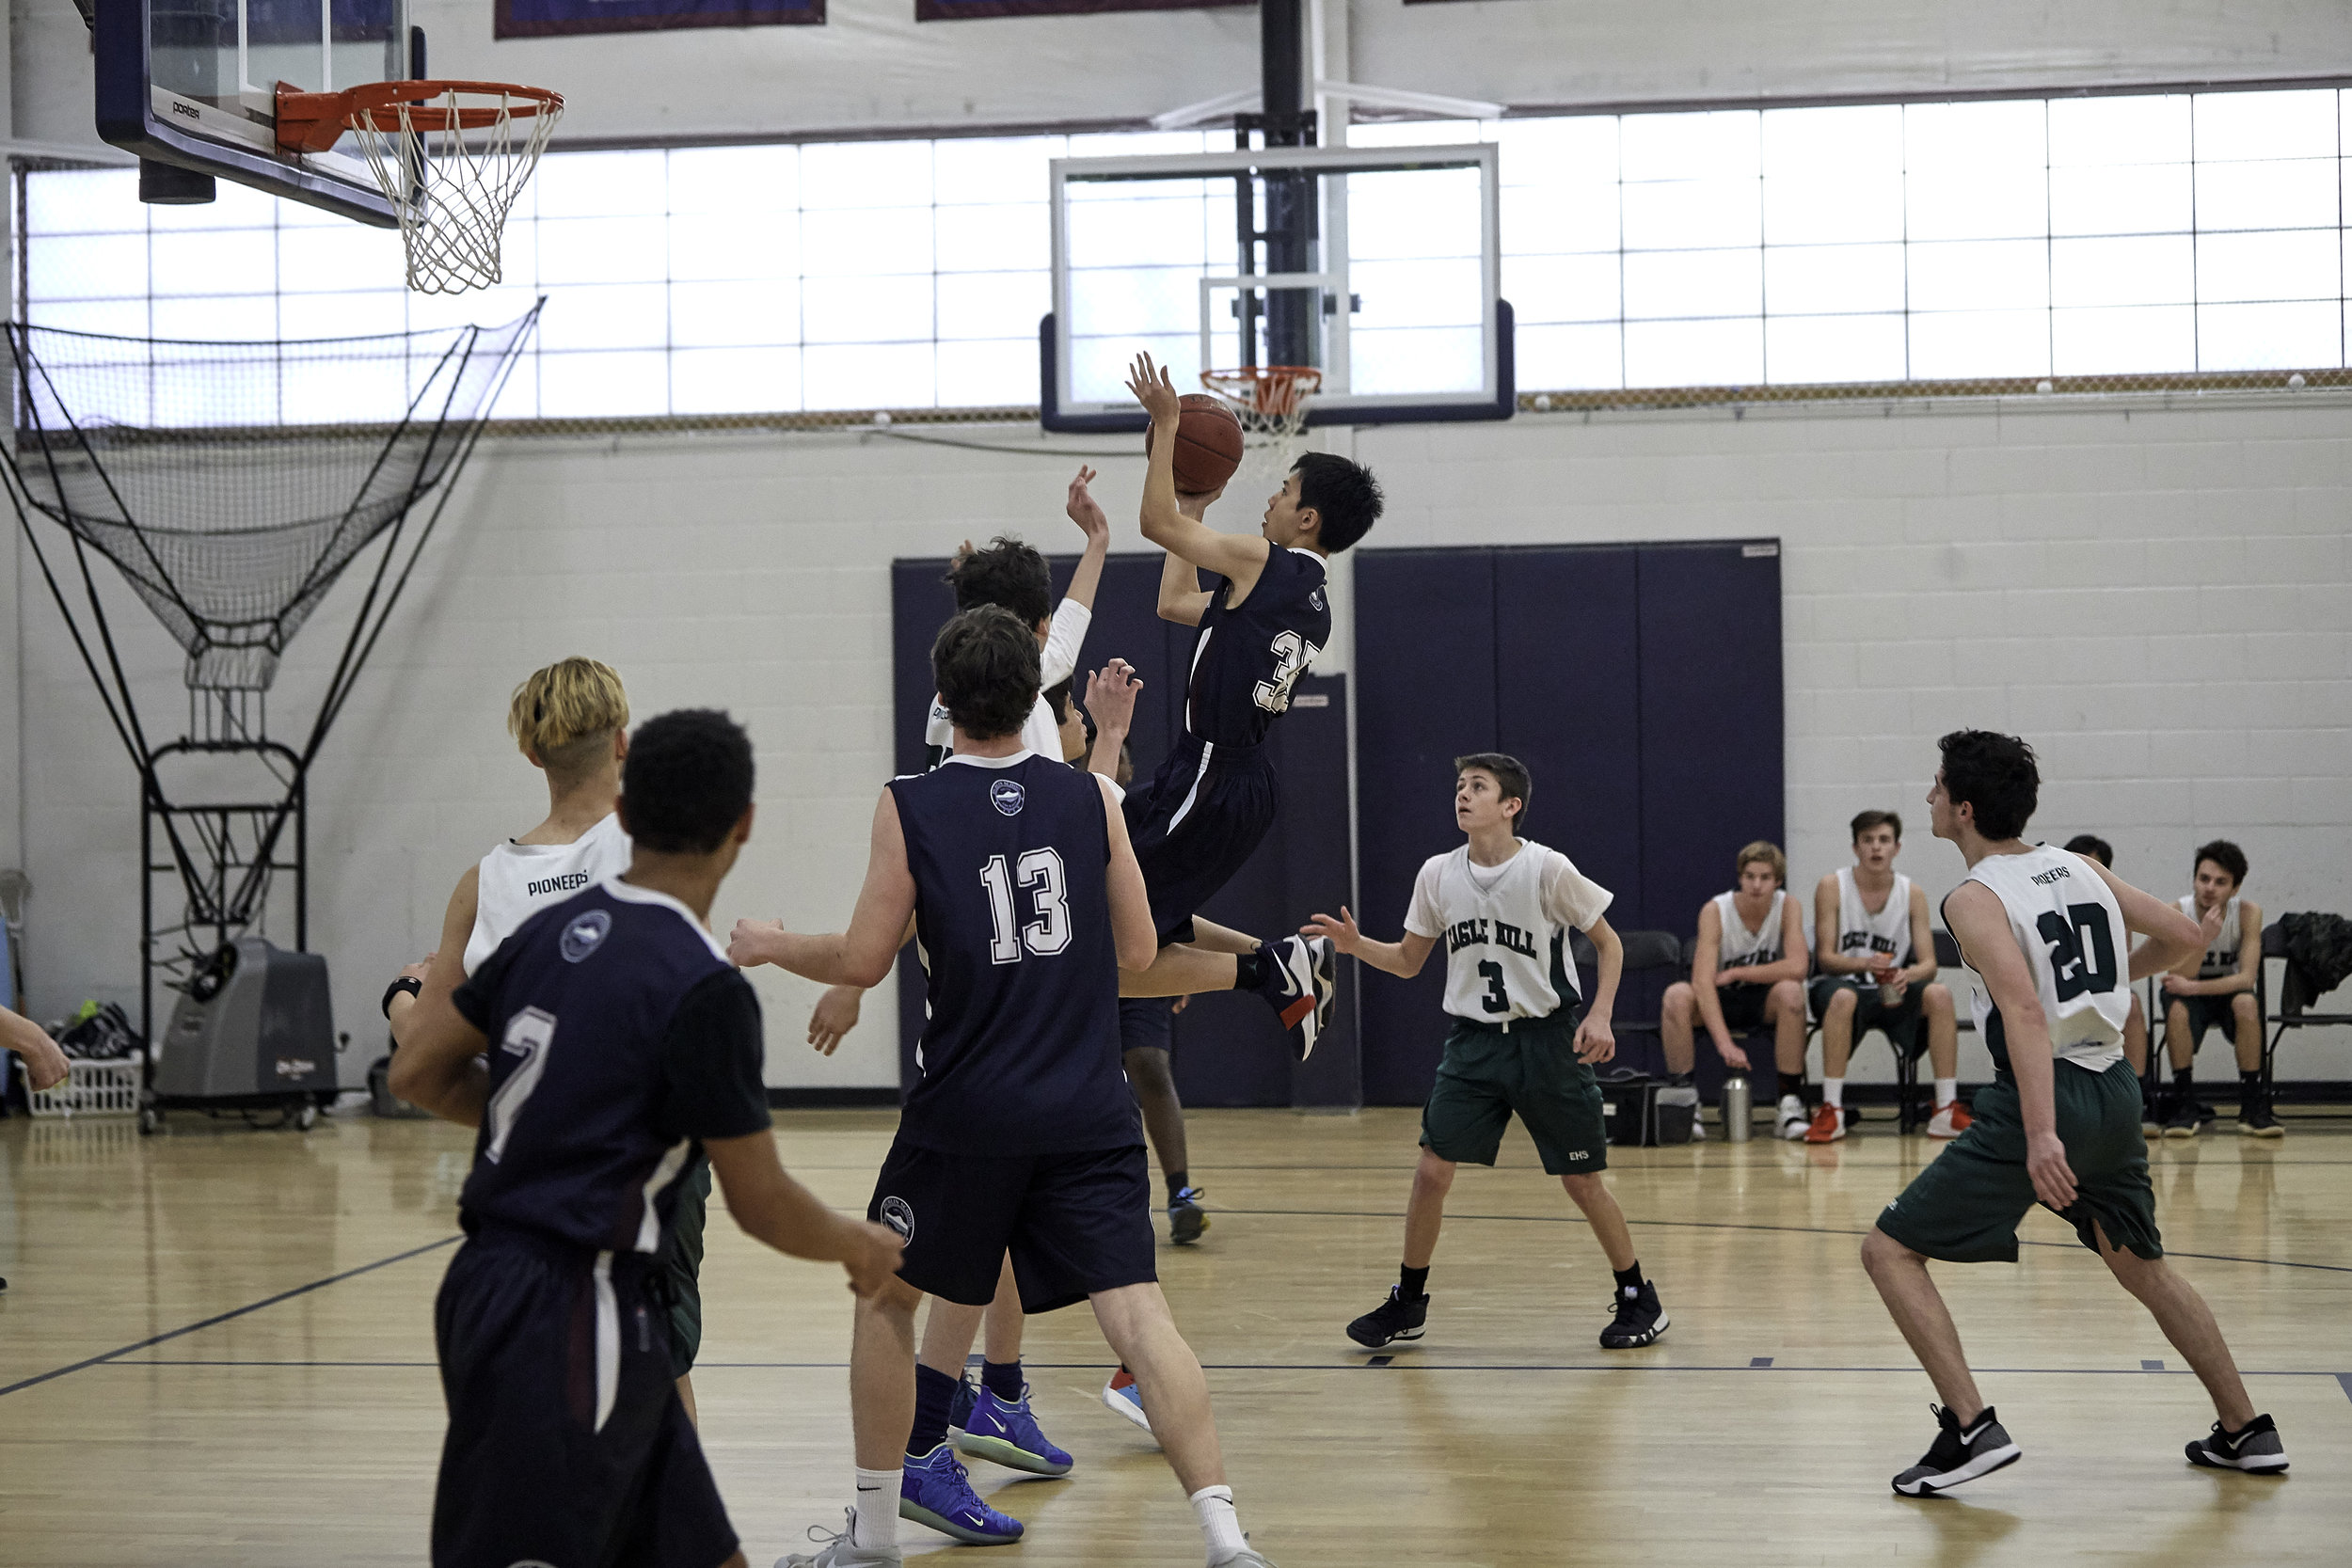 Boys Varsity Basketball vs. Eagle Hill School JV at RVAL Tournament - February 11, 2019 - 167721.jpg